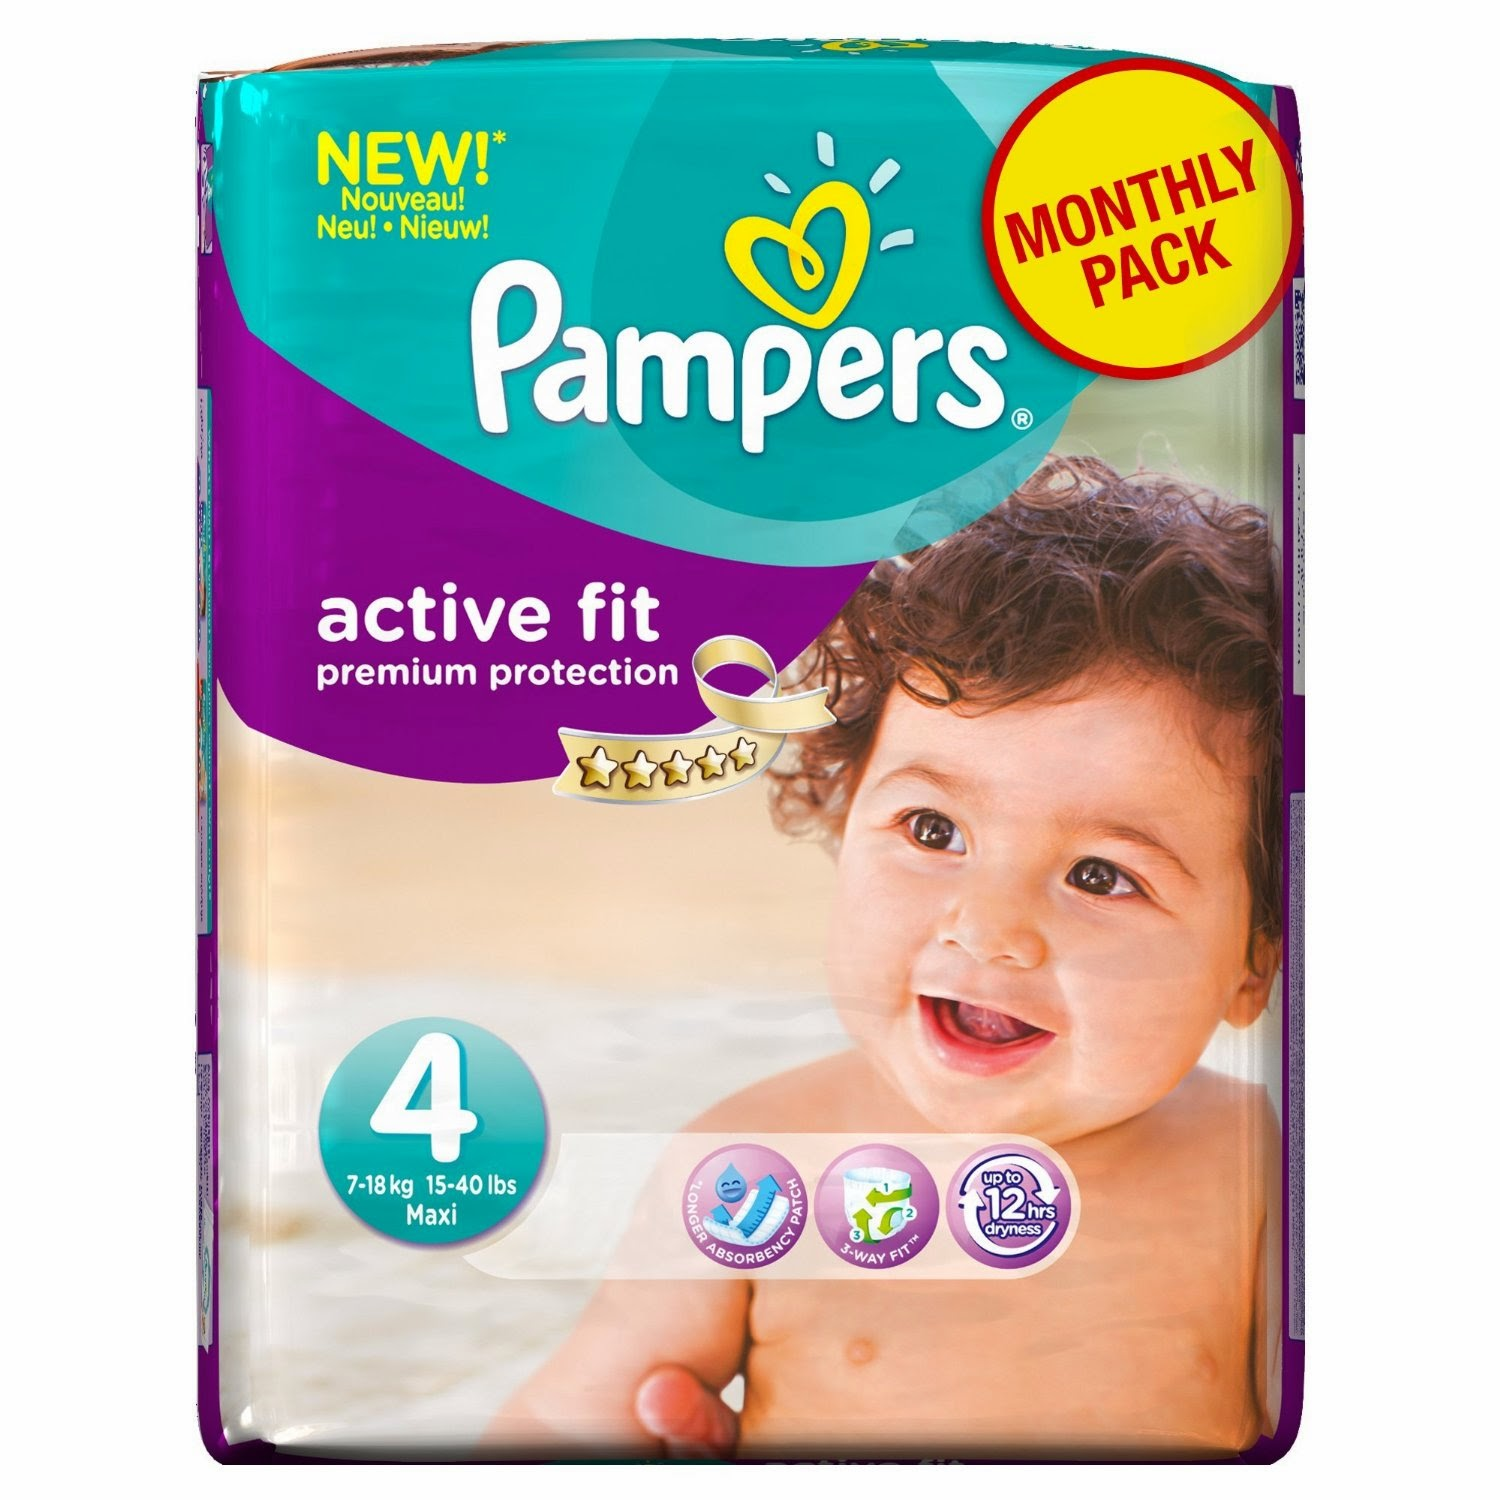 Promo couches pampers pas cher tailles 3 4 et 5 active fit promotions 2018 - Couche pampers taille 5 pas cher ...